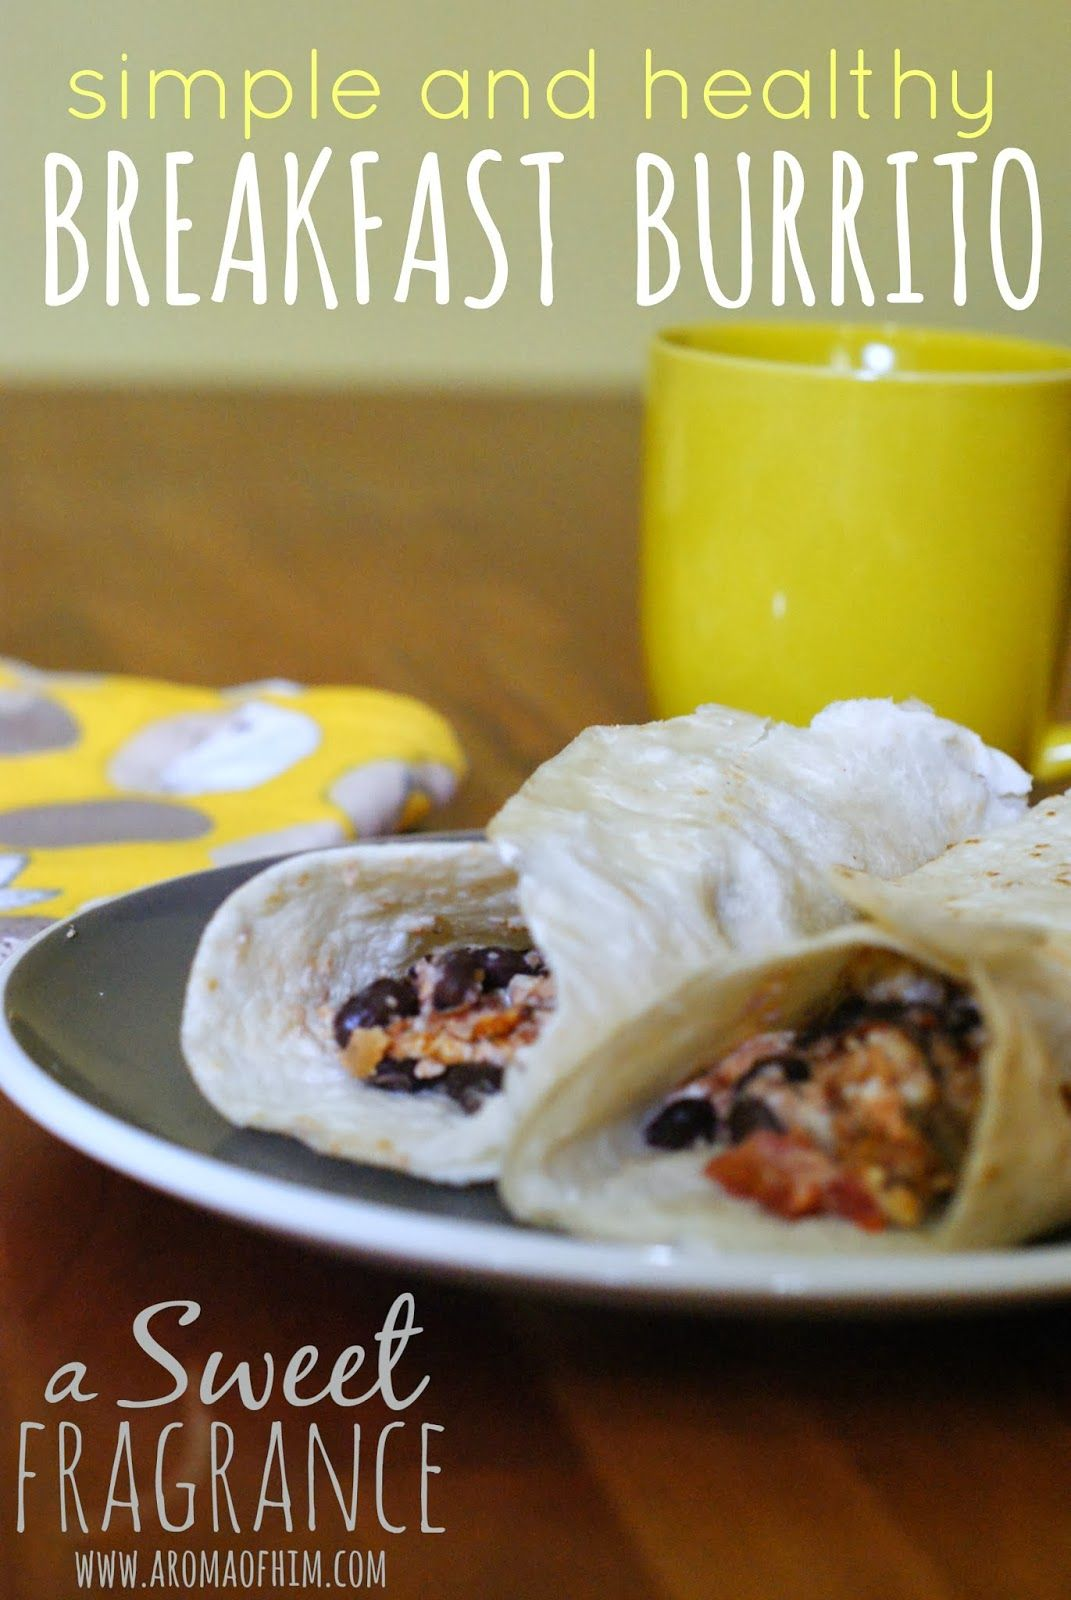 A Sweet Fragrance: Simple and Healthy Breakfast Burrito